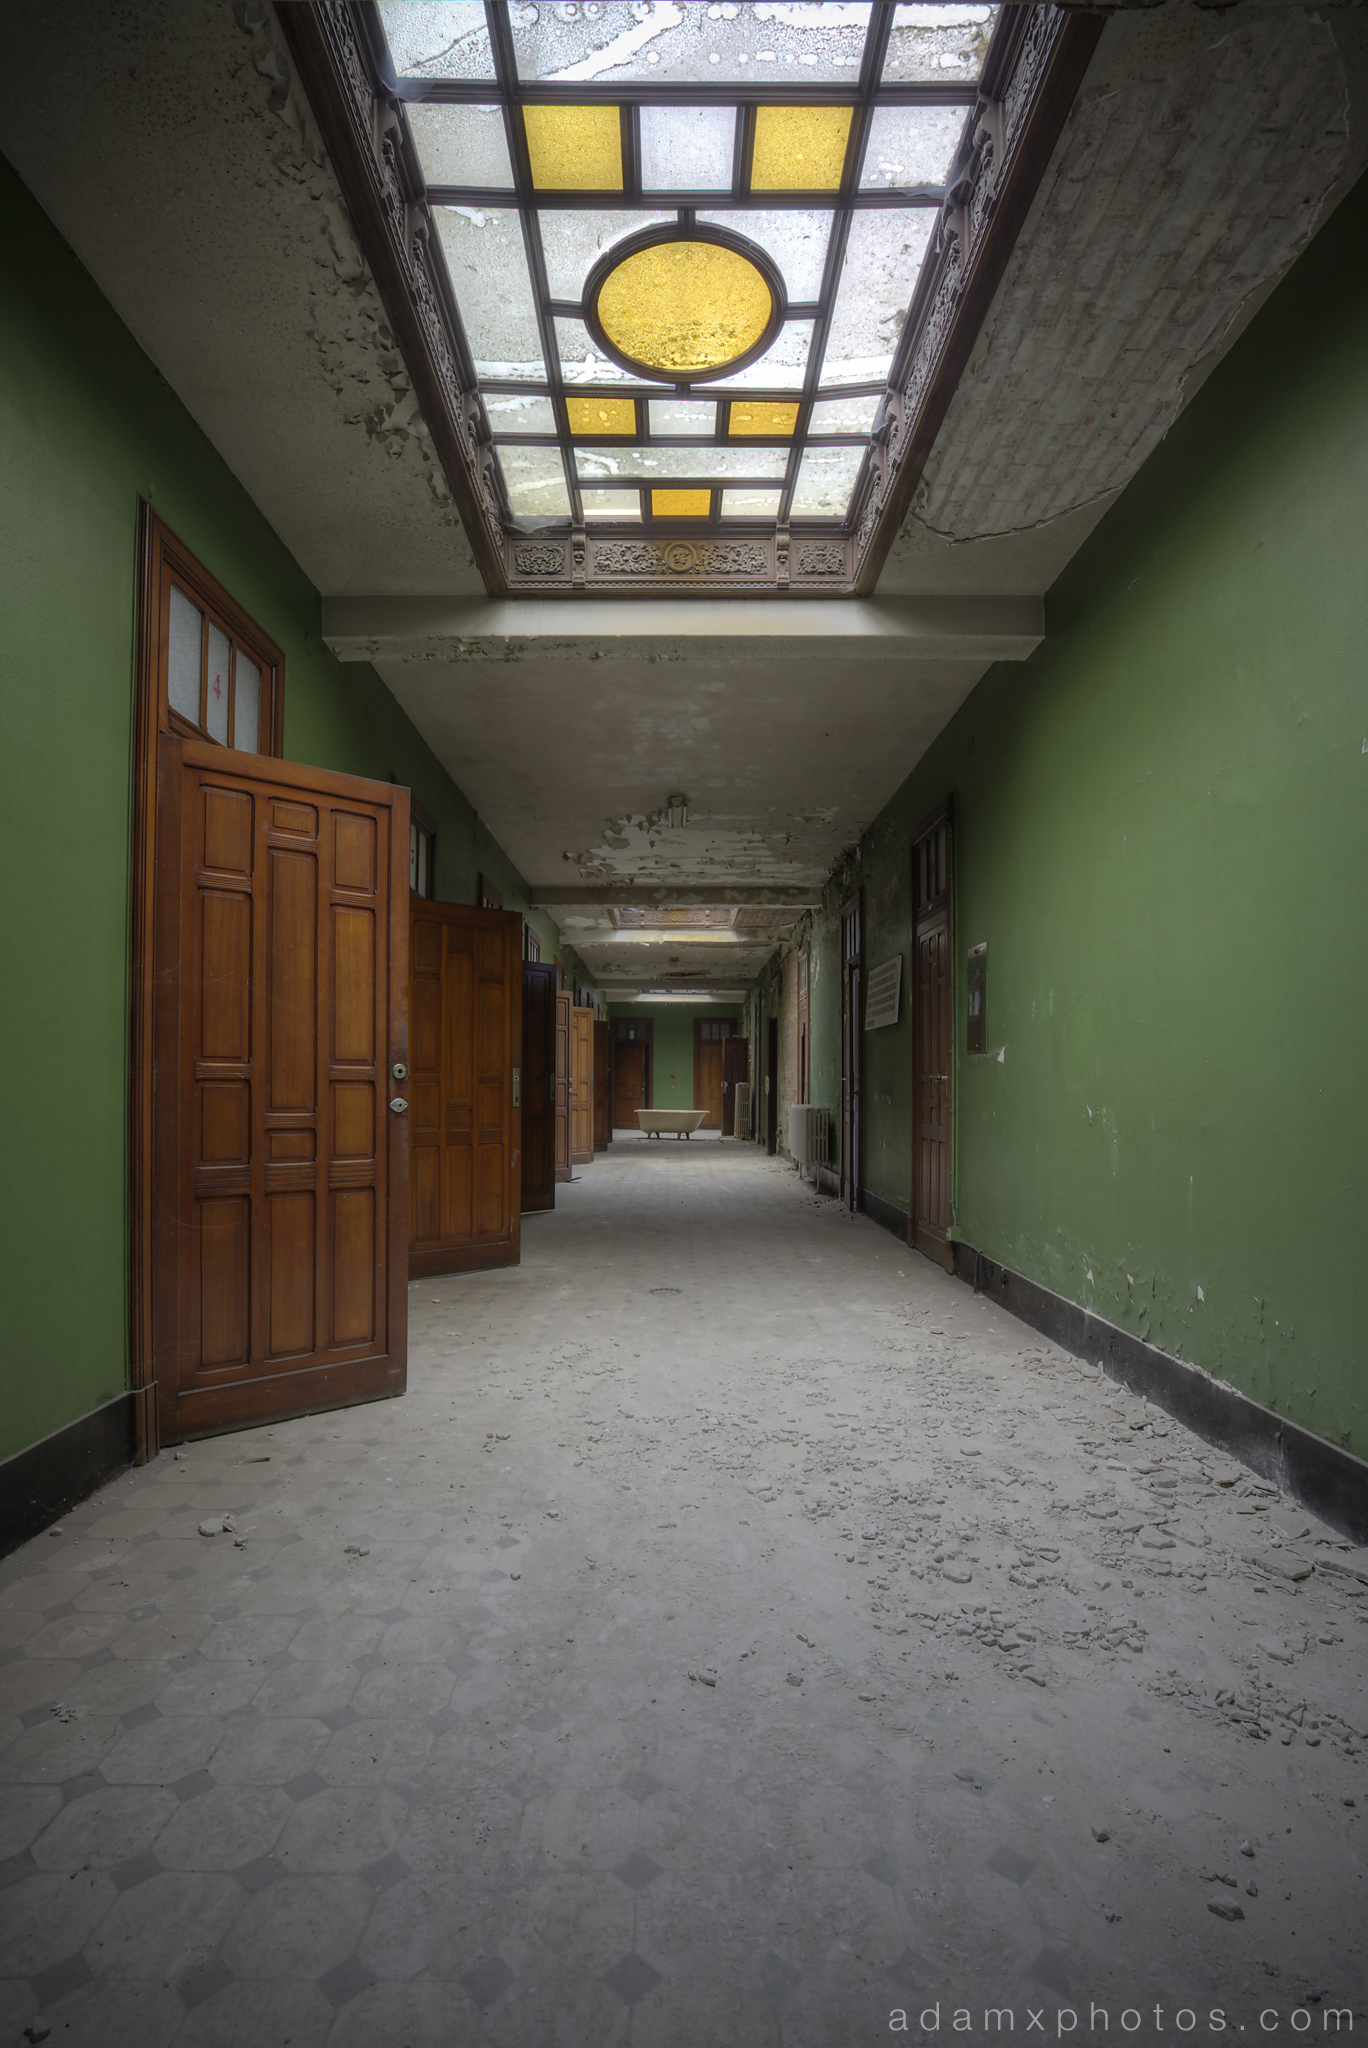 Green Corridor skylight stained glass ornate Adam X Urbex UE Urban Exploration Belgium Piscine Crachoir swimming pool abandoned derelict unused empty disused decay decayed decaying grimy grime